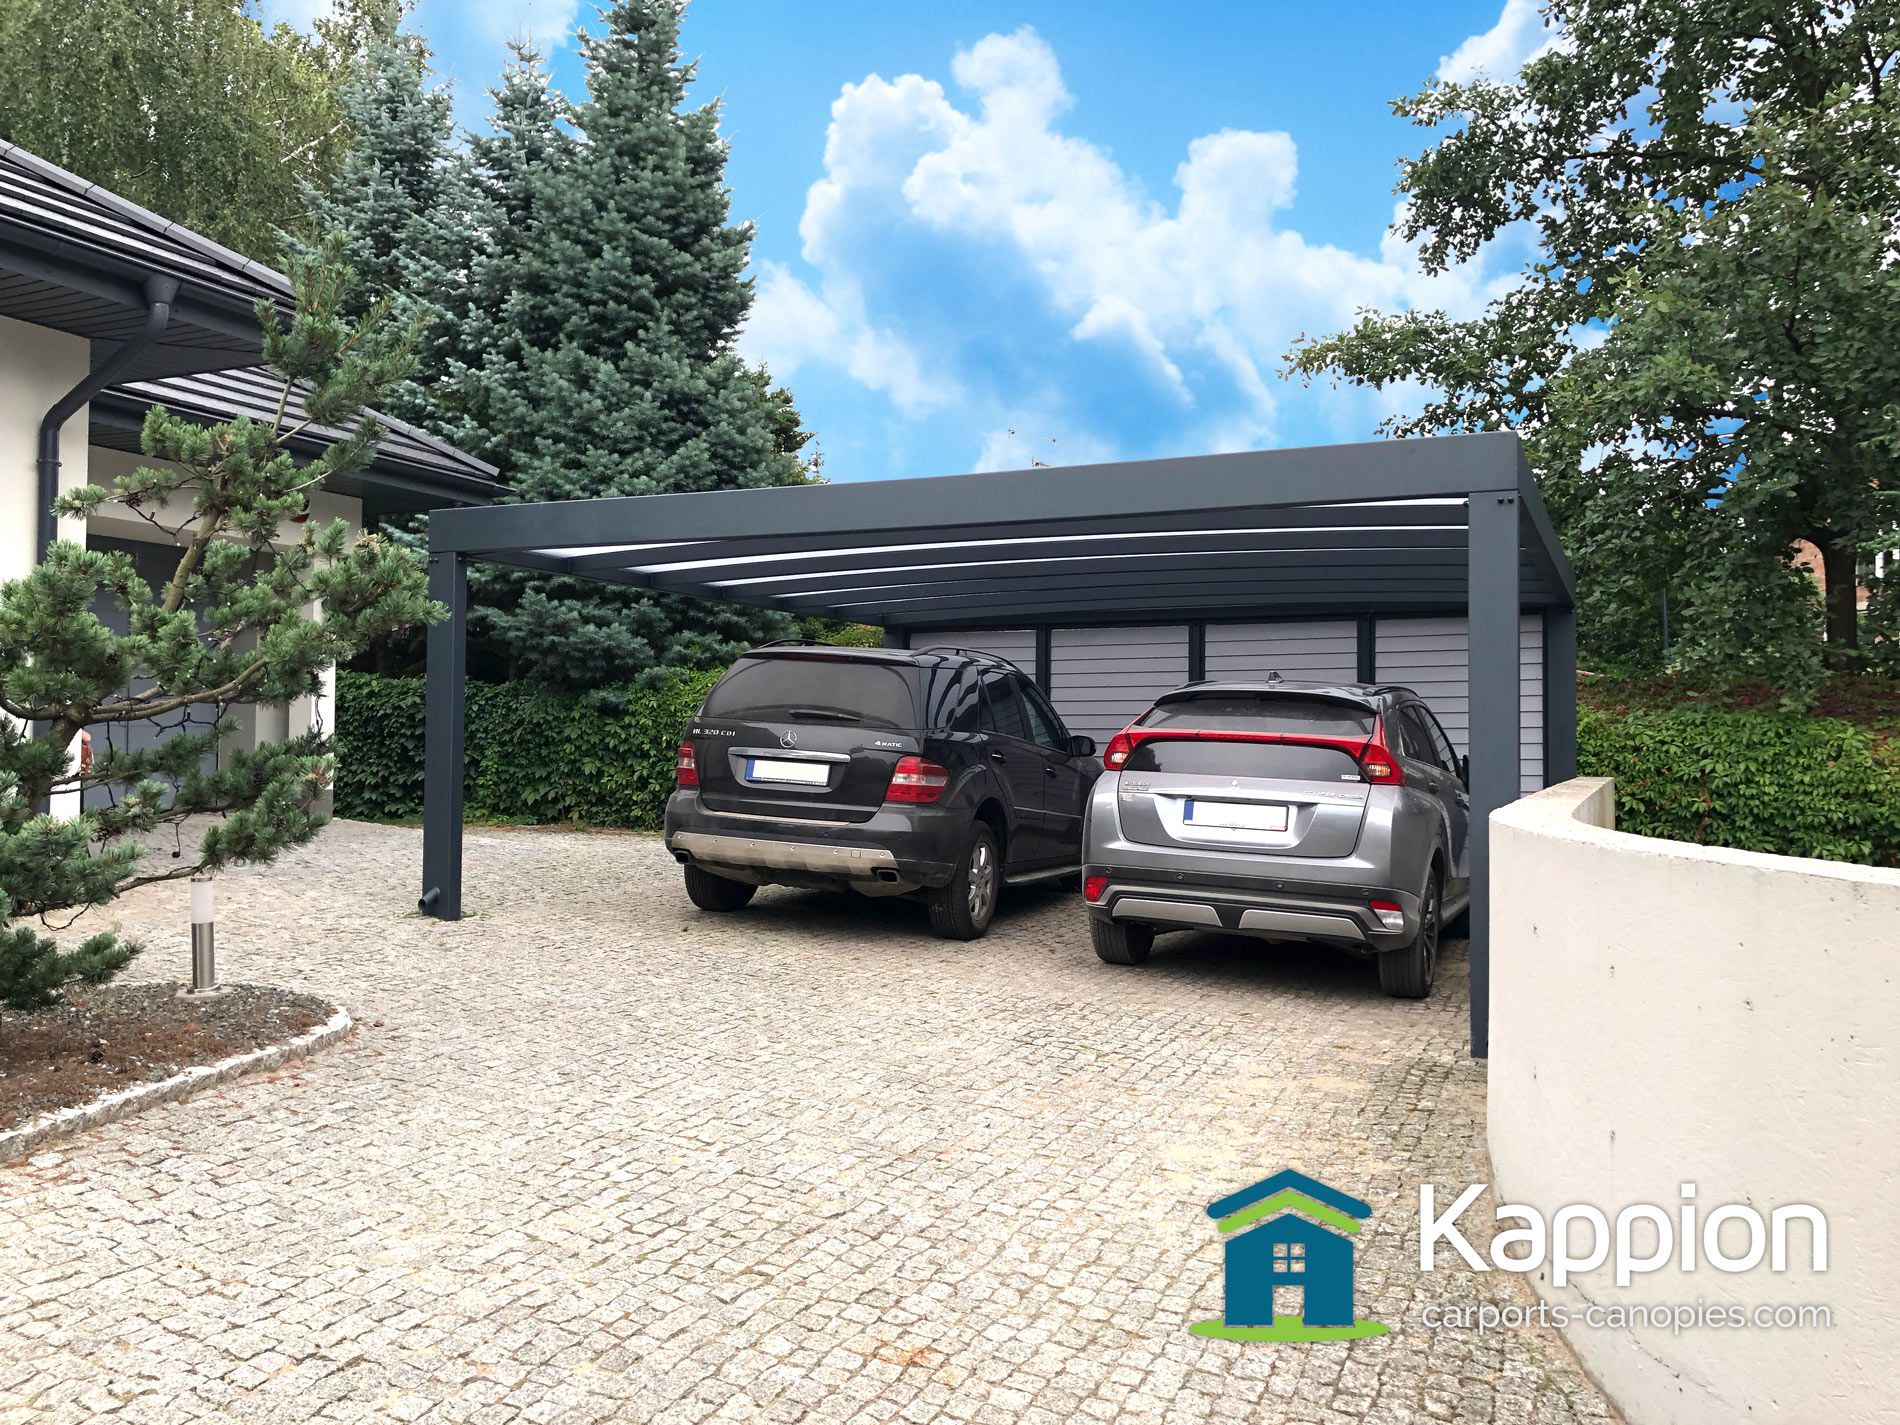 Hand Made Carports Canopies Carport Canopy Commercial Canopy Carport Designs